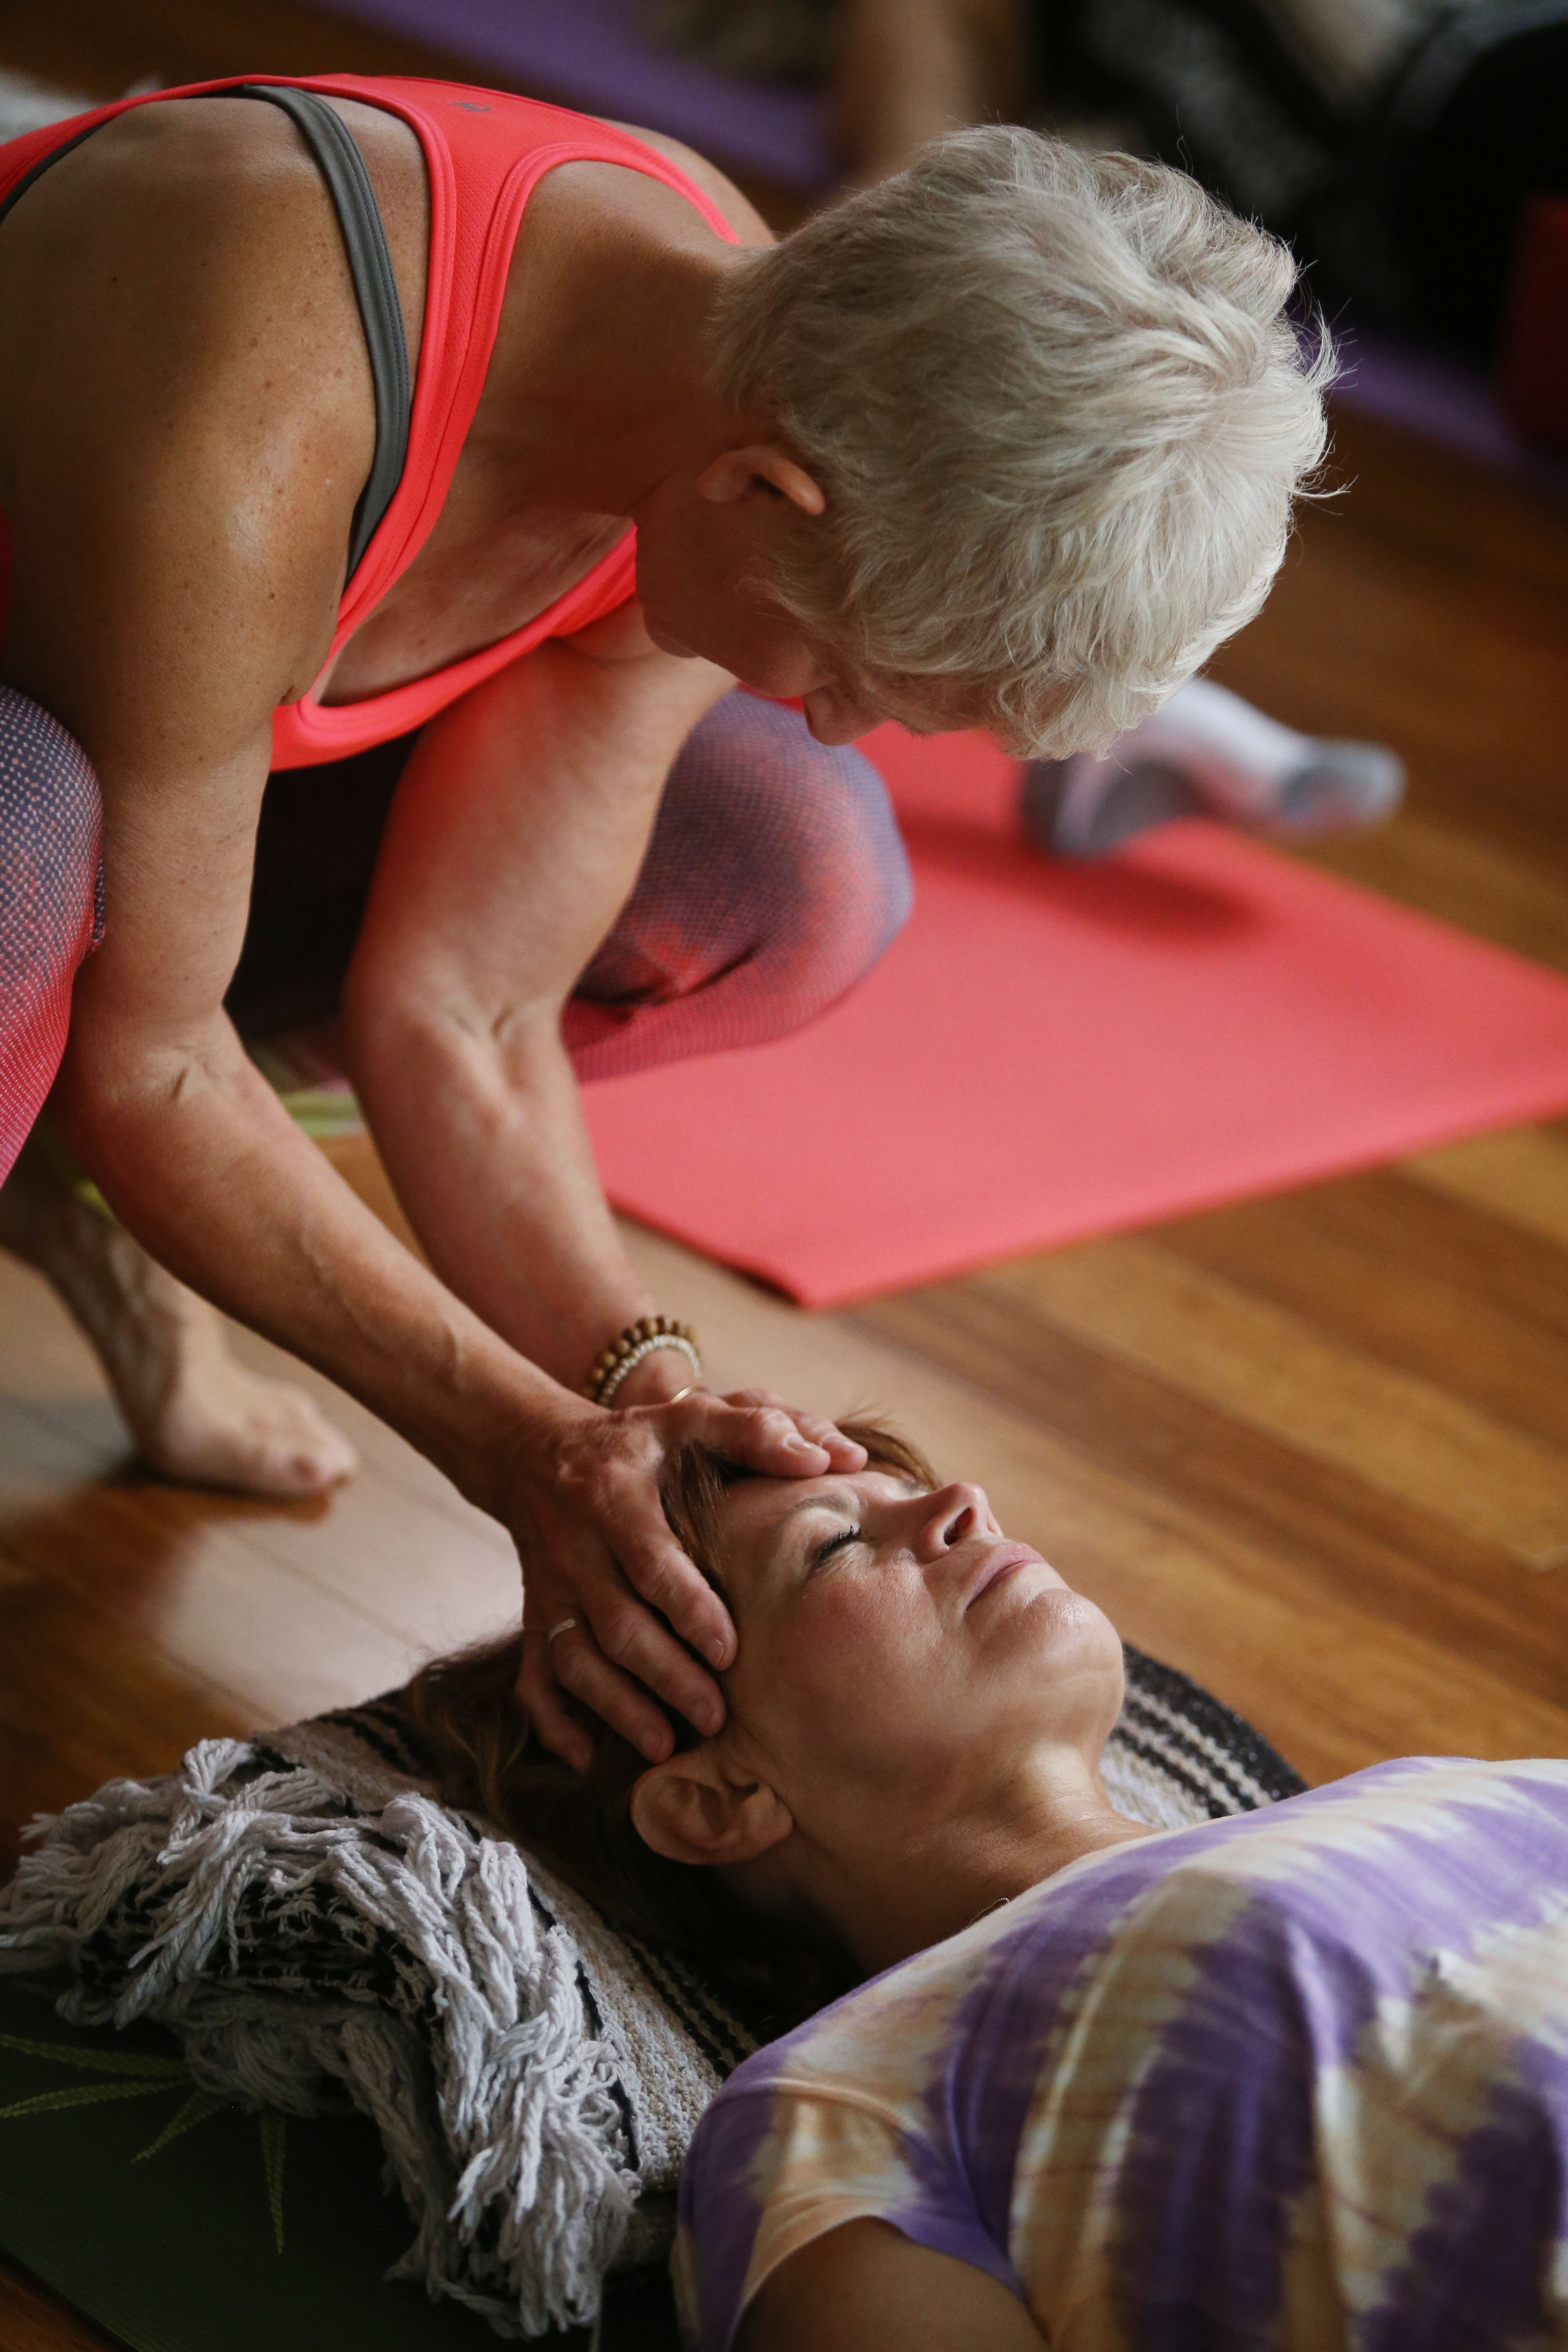 beHealthy Institute is a wellness center at 40 Main St. in Hamburg. Instructor Holly Maloney performs raiki with aromatherapy on Janet Speciale at the end of a yoga class, Wednesday, Aug. 10, 2016.   (Sharon Cantillon/Buffalo News)